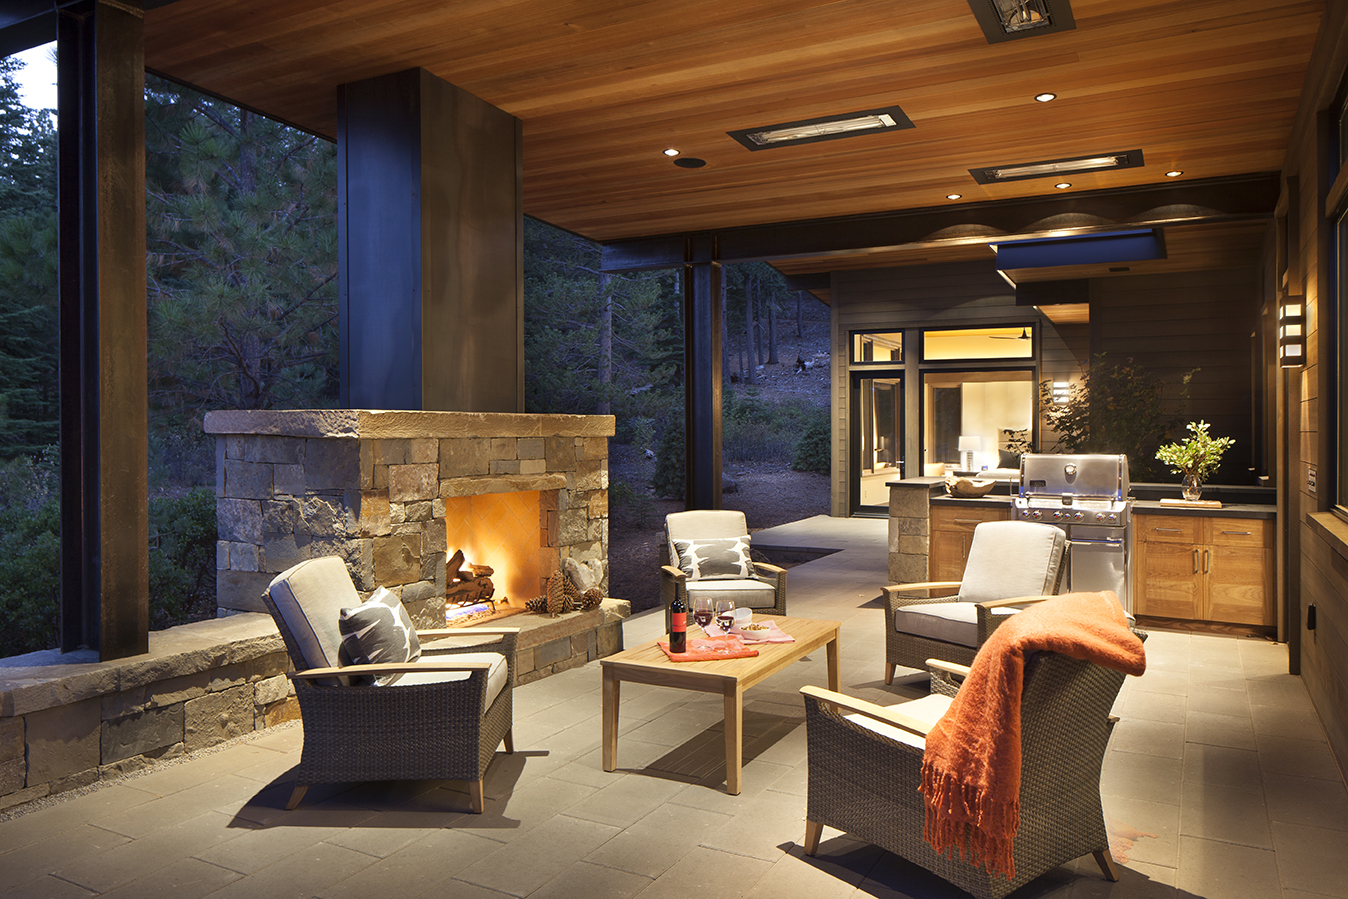 Lot 76_Exterior_Covered Lounge_Outdoor Fireplace.jpg